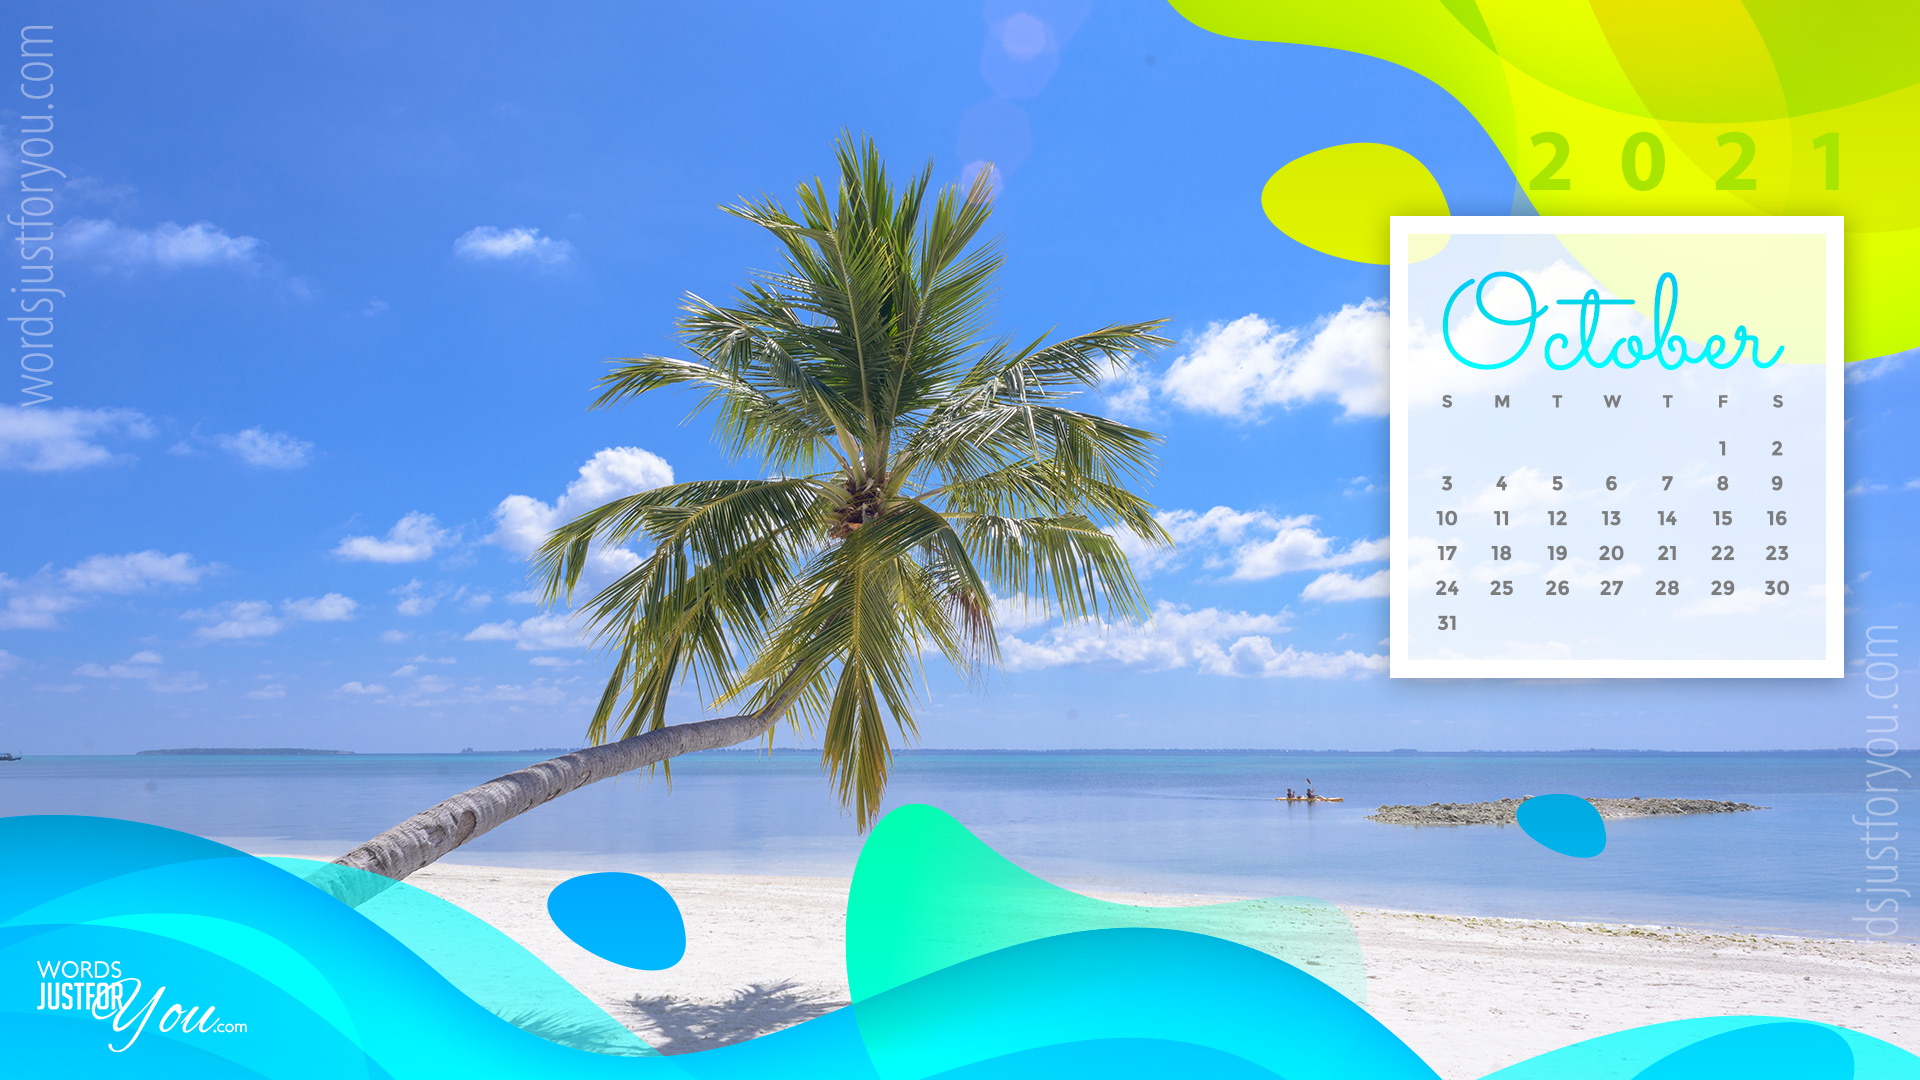 Palm Tree on Beach with October 2021 Calendar Wallpaper